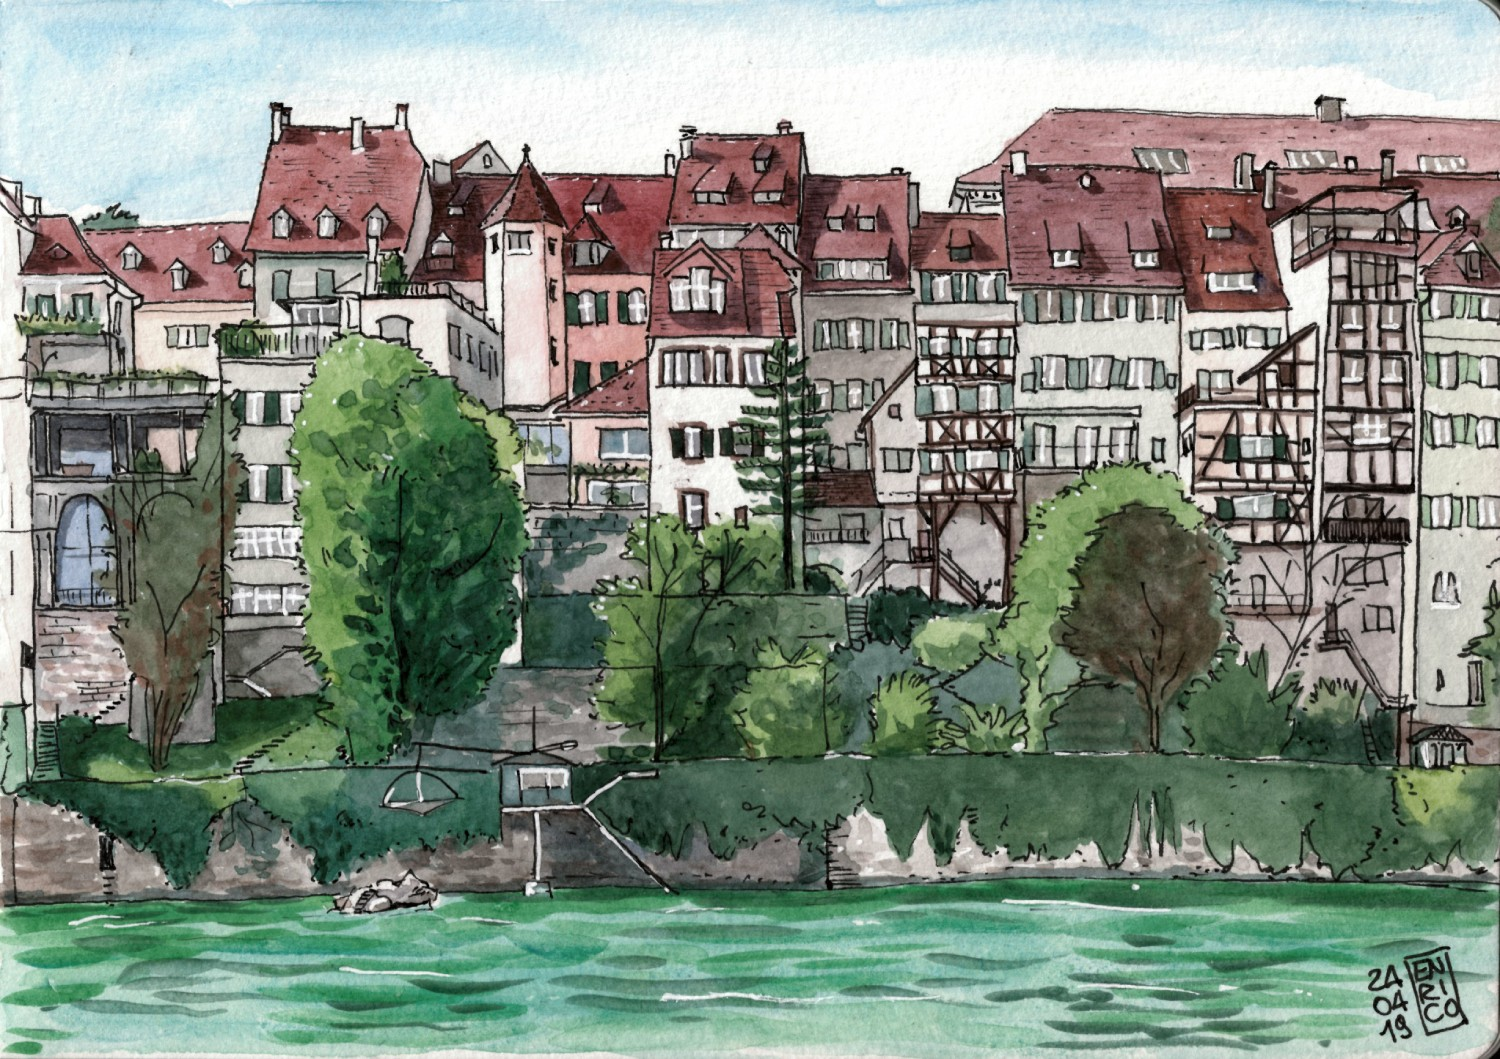 The view from the Rhine between Mittlerebrücke and the Münster.